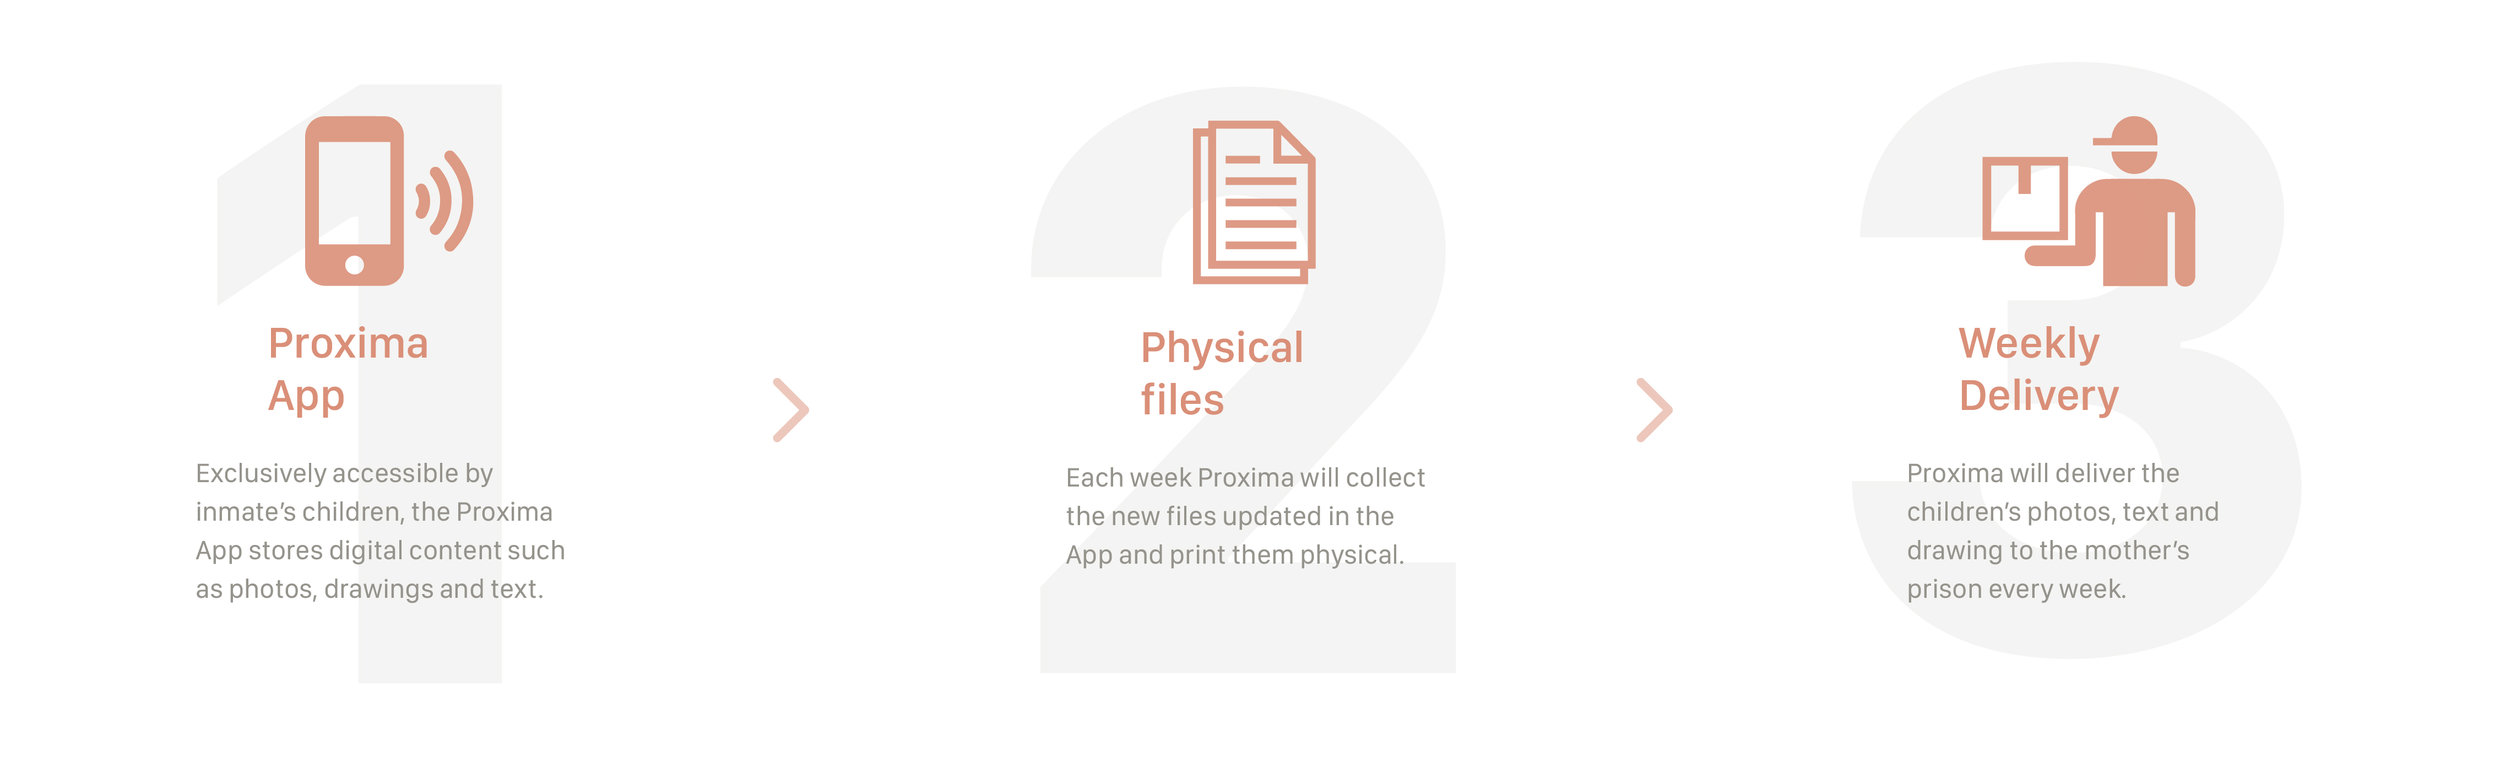 proxima-infographic.png